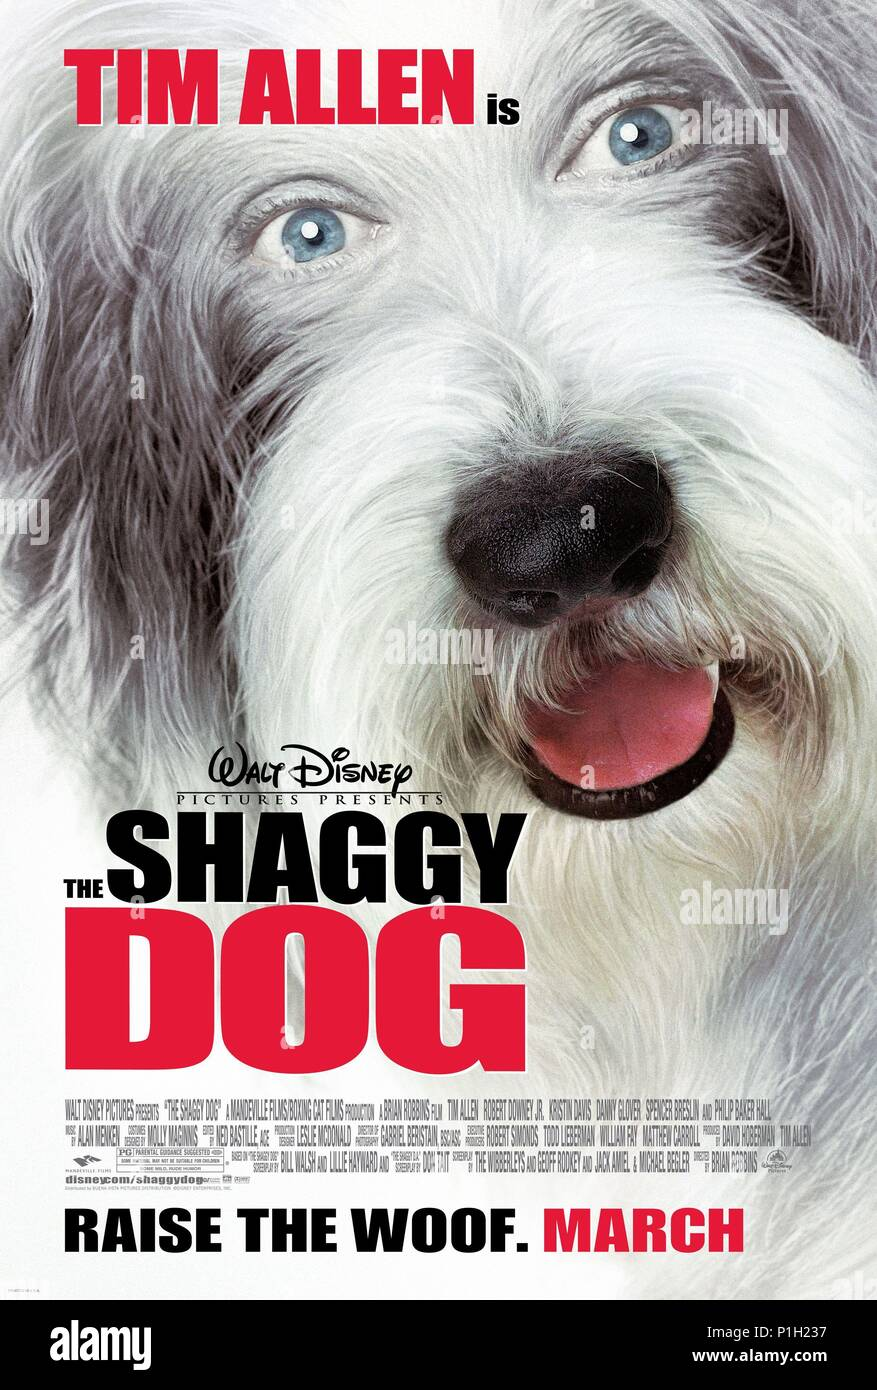 Original Film Title: THE SHAGGY DOG  English Title: THE